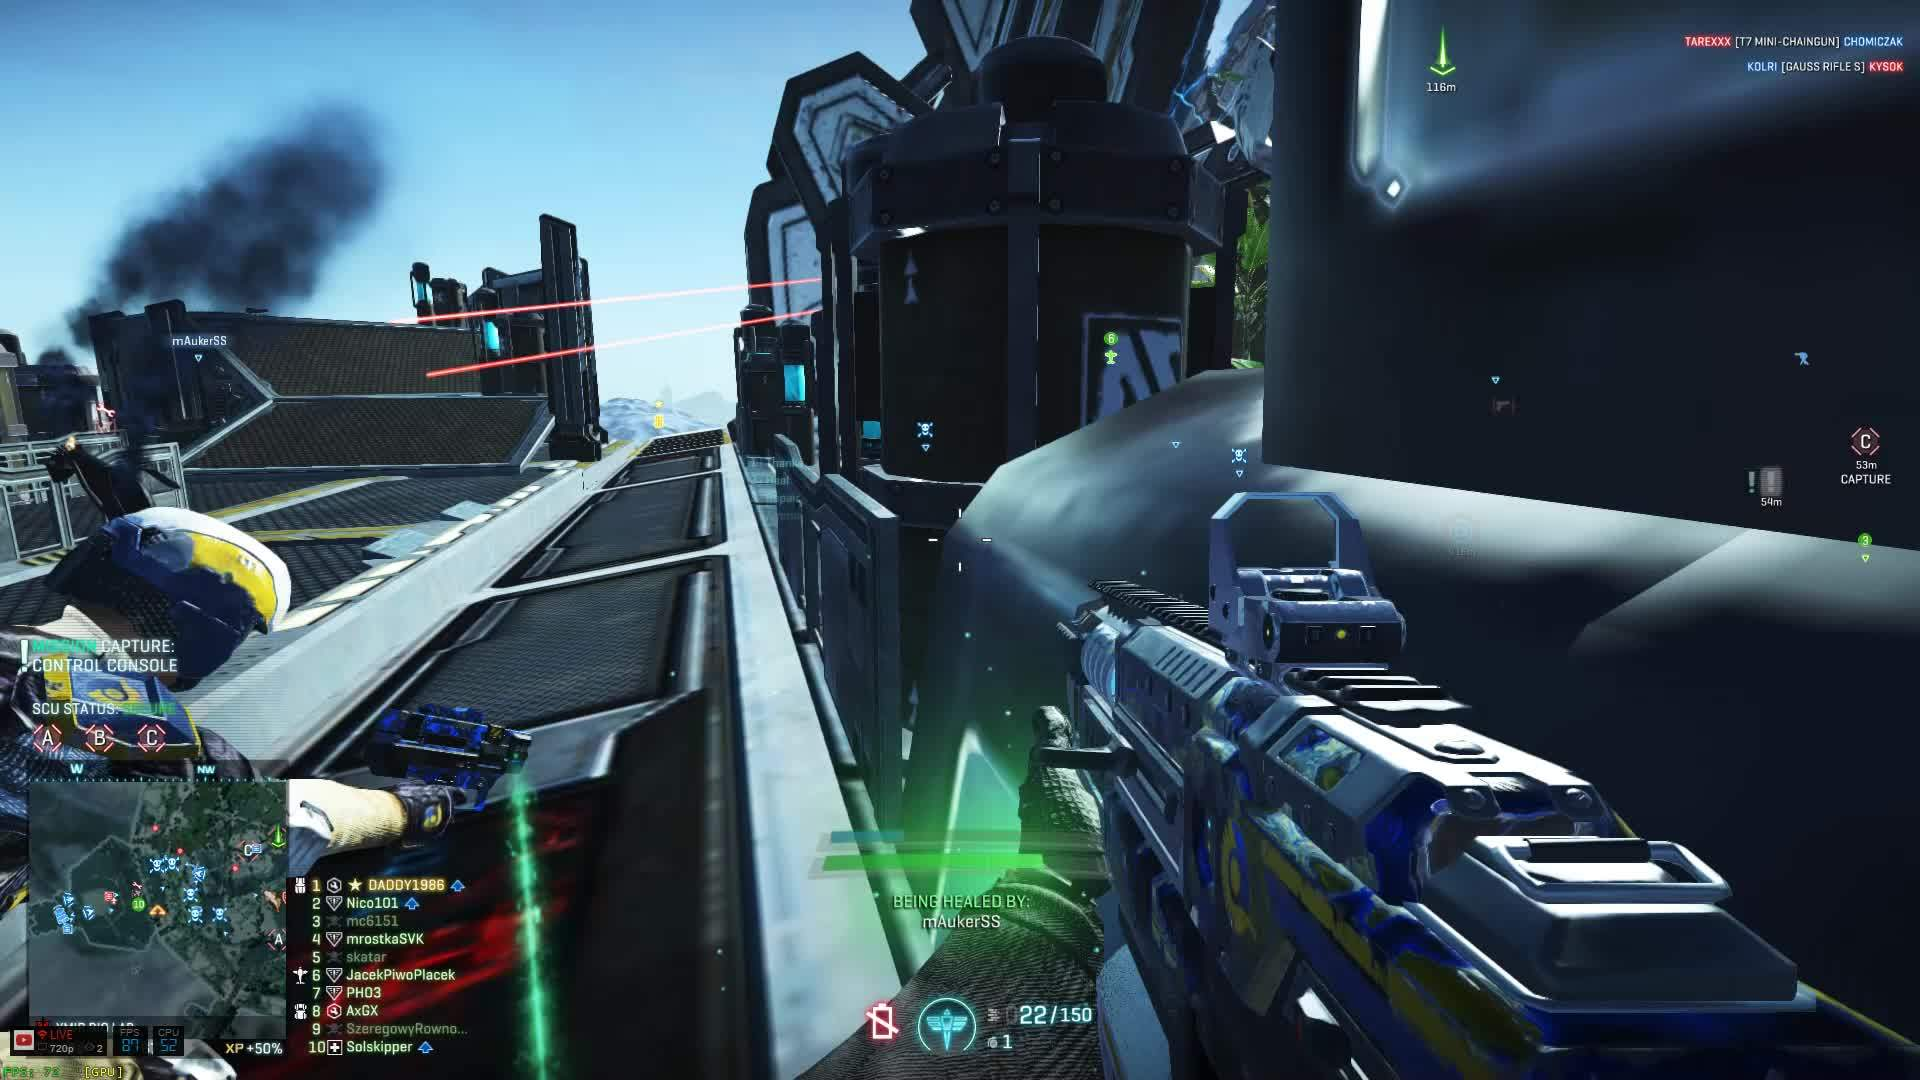 planetside, ps2cobalt, Why the NC team damage is so high GIFs